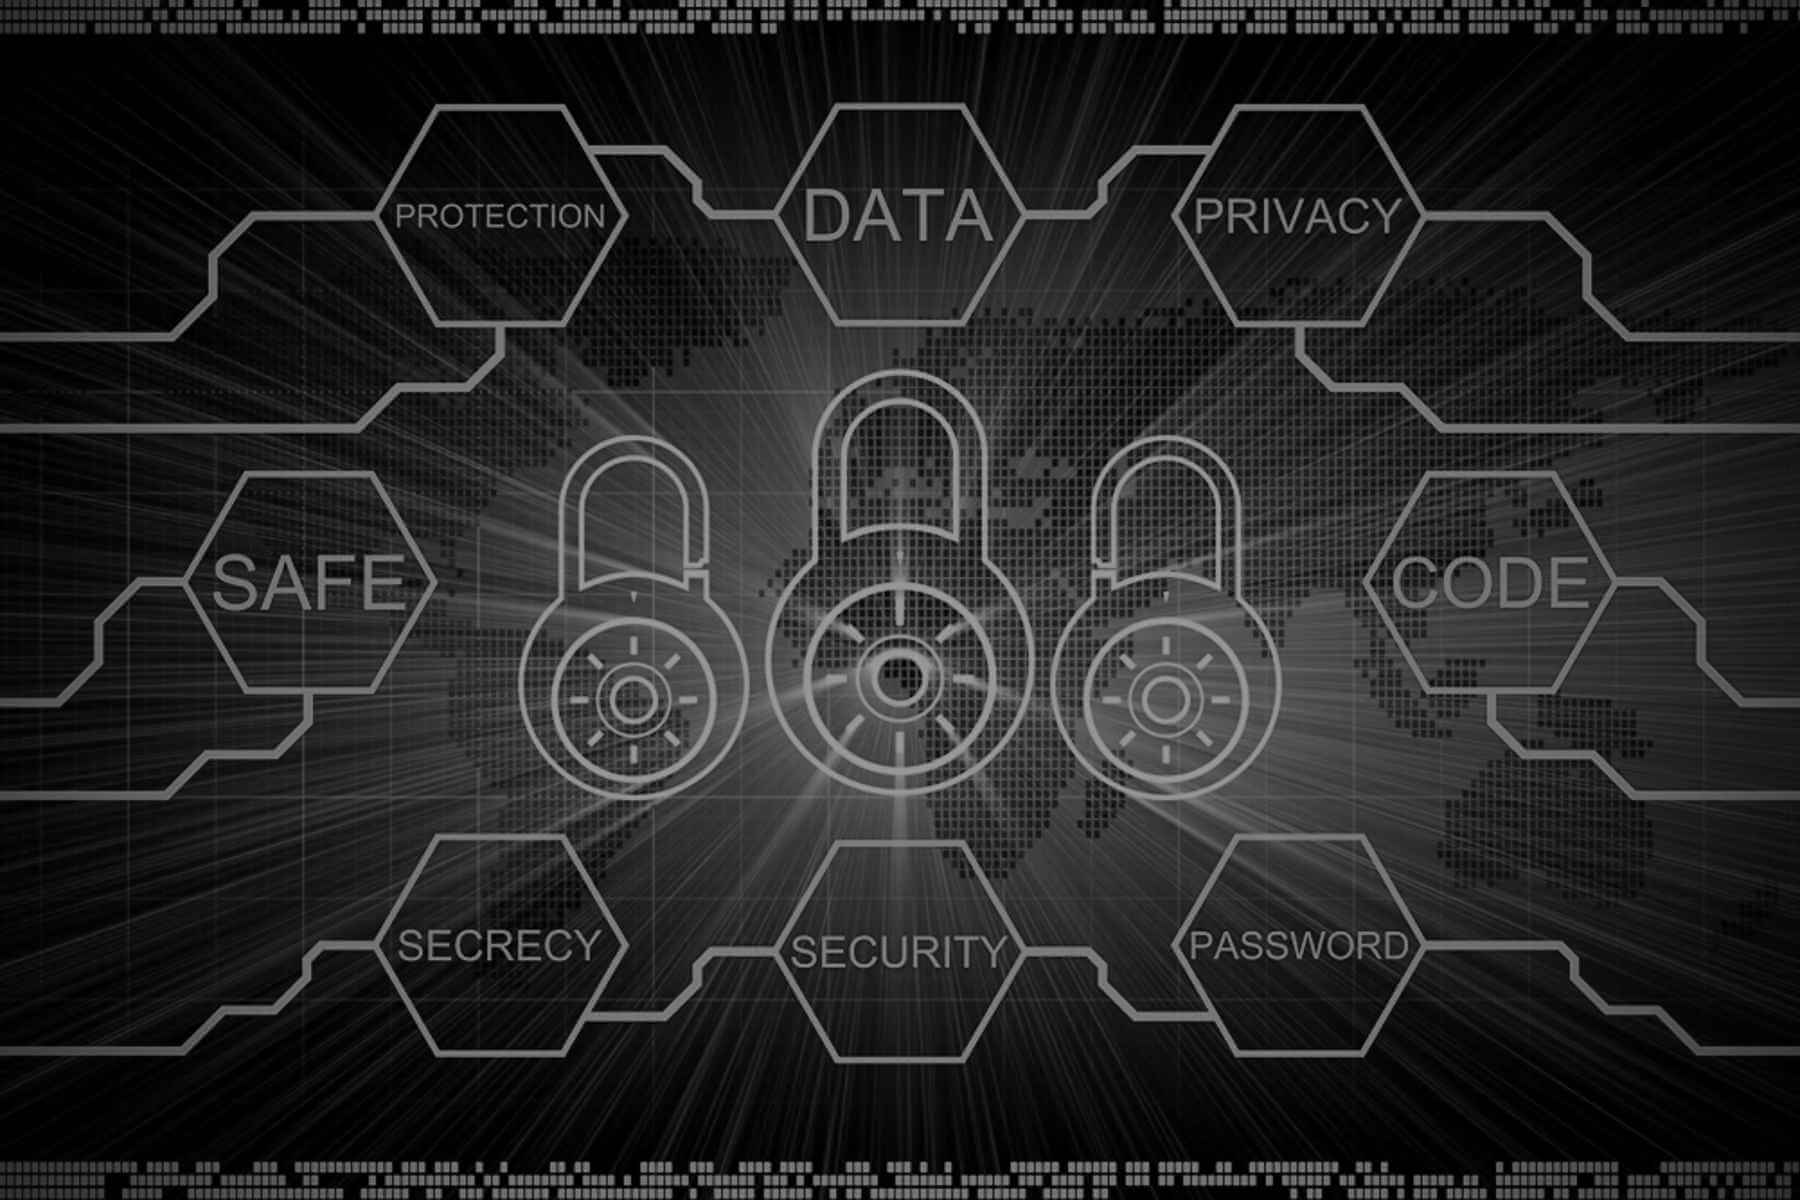 Security fatigue makes us vulnerable to cyber threats